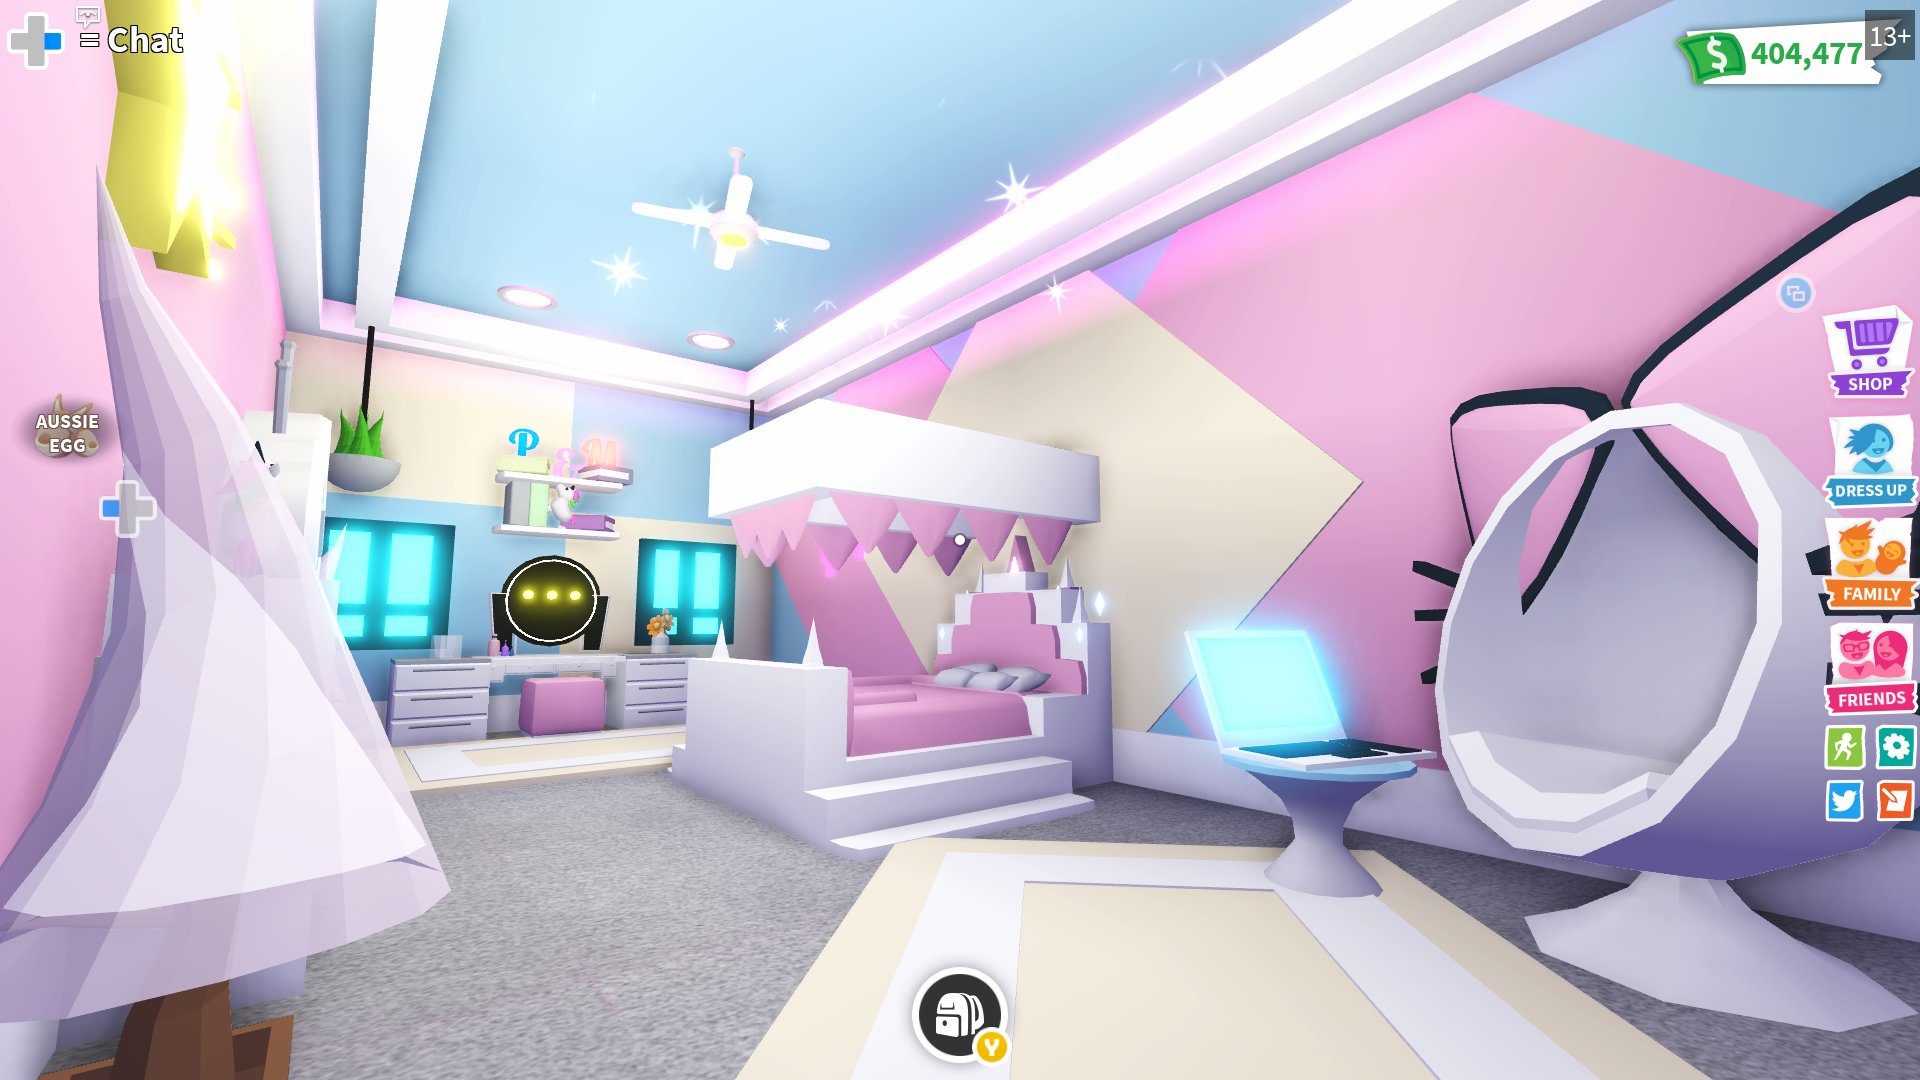 Madammadhouse Roblox On Twitter Futuristic House Design That Me And Poeticdemon Made In Adopt Me Click Here For Full Video Https T Co P9esyg3iem Poeticdemonr Adoptmebuilds Adoptmetrades Adoptmetrading Https T Co Wvpedhoijx